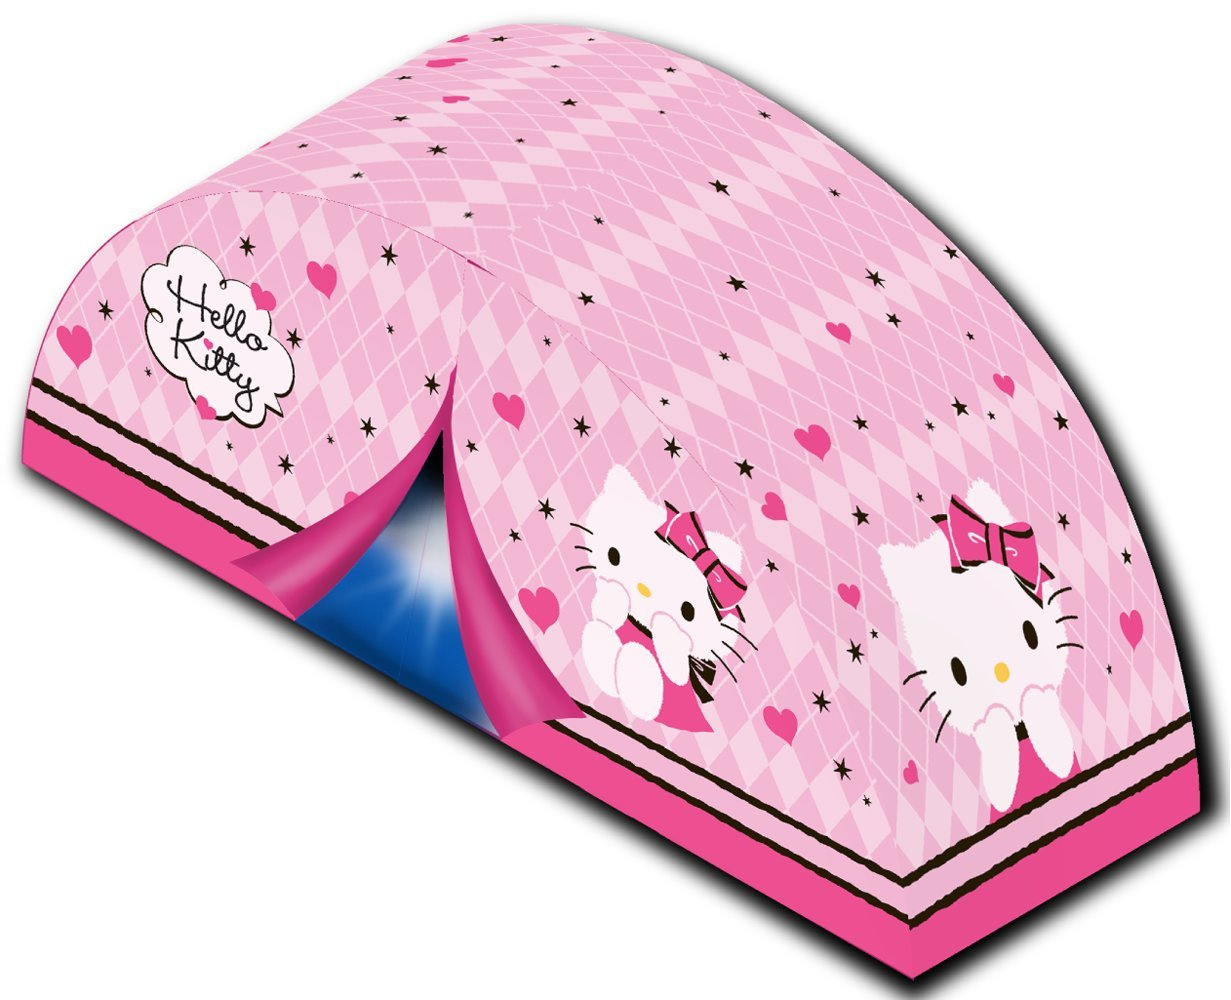 Sanrio Hello Kitty Sassy Slumber Bed Tent AS106Y